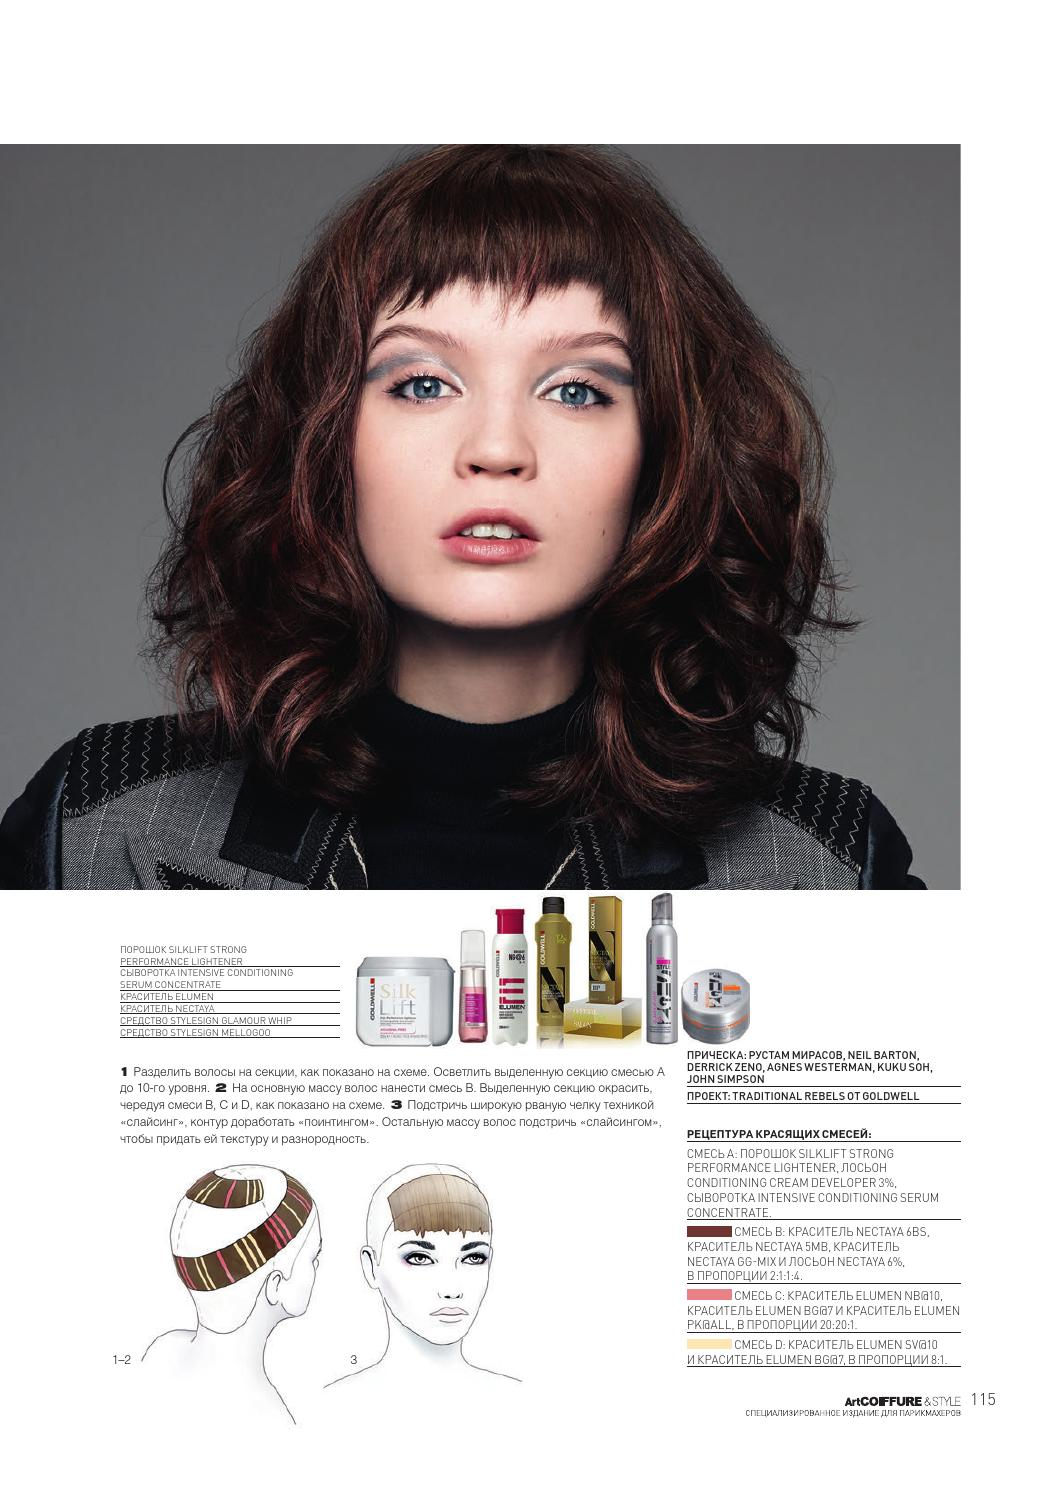 6 Art Coiffure Manom Art Coiffure And Style 11 Winter 2014 2015 By Art Coiffure